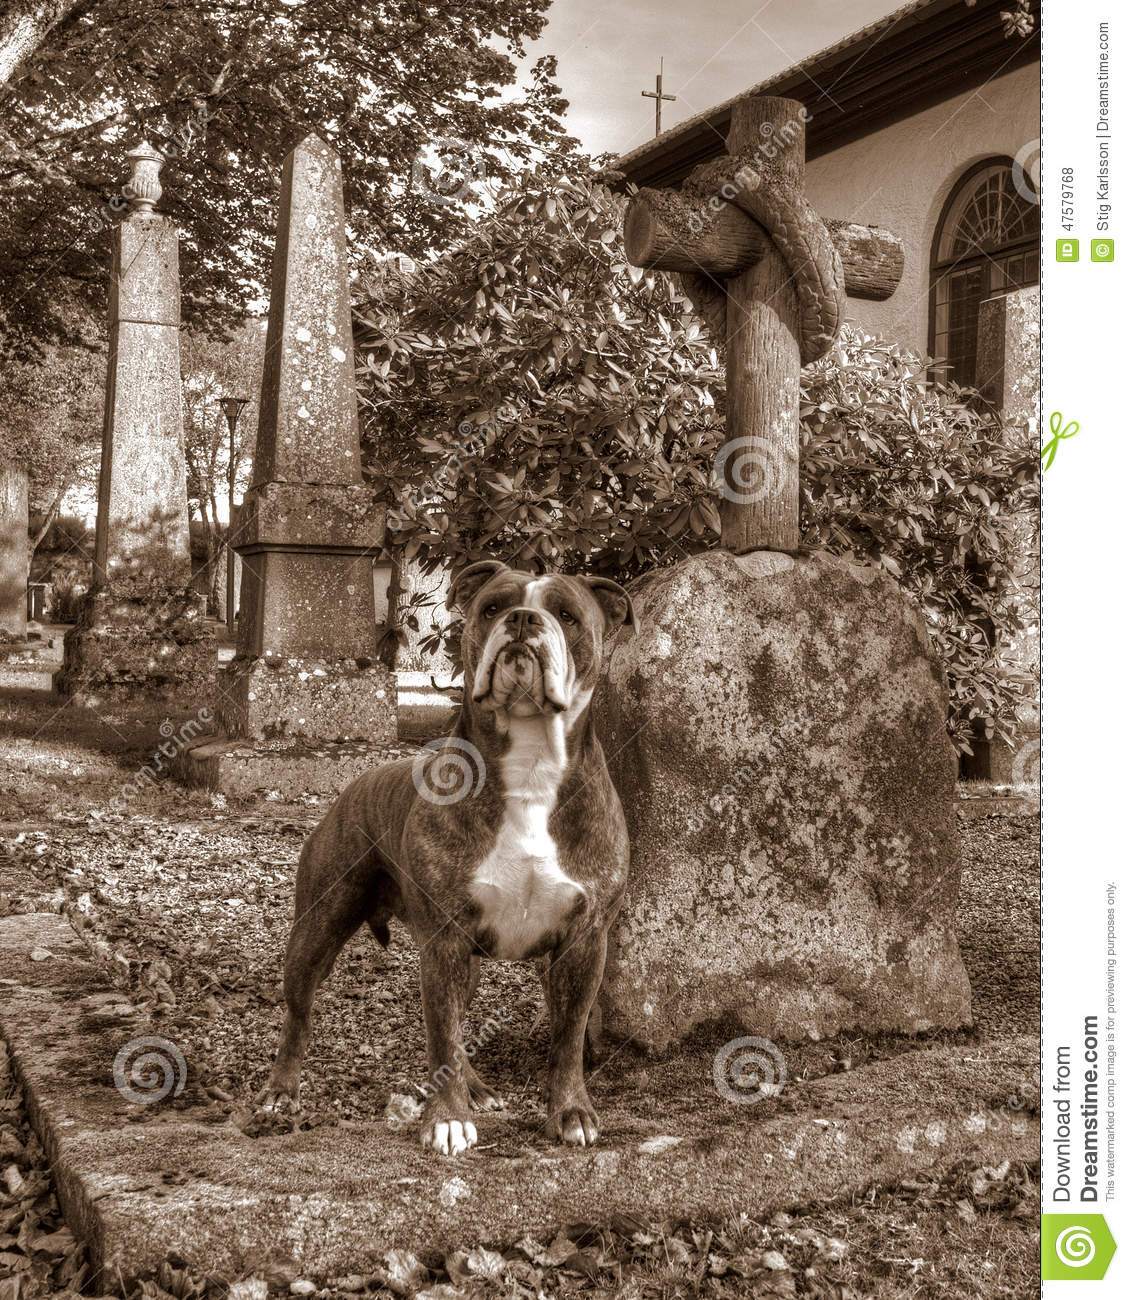 Where To Find Home For Bitting Dog